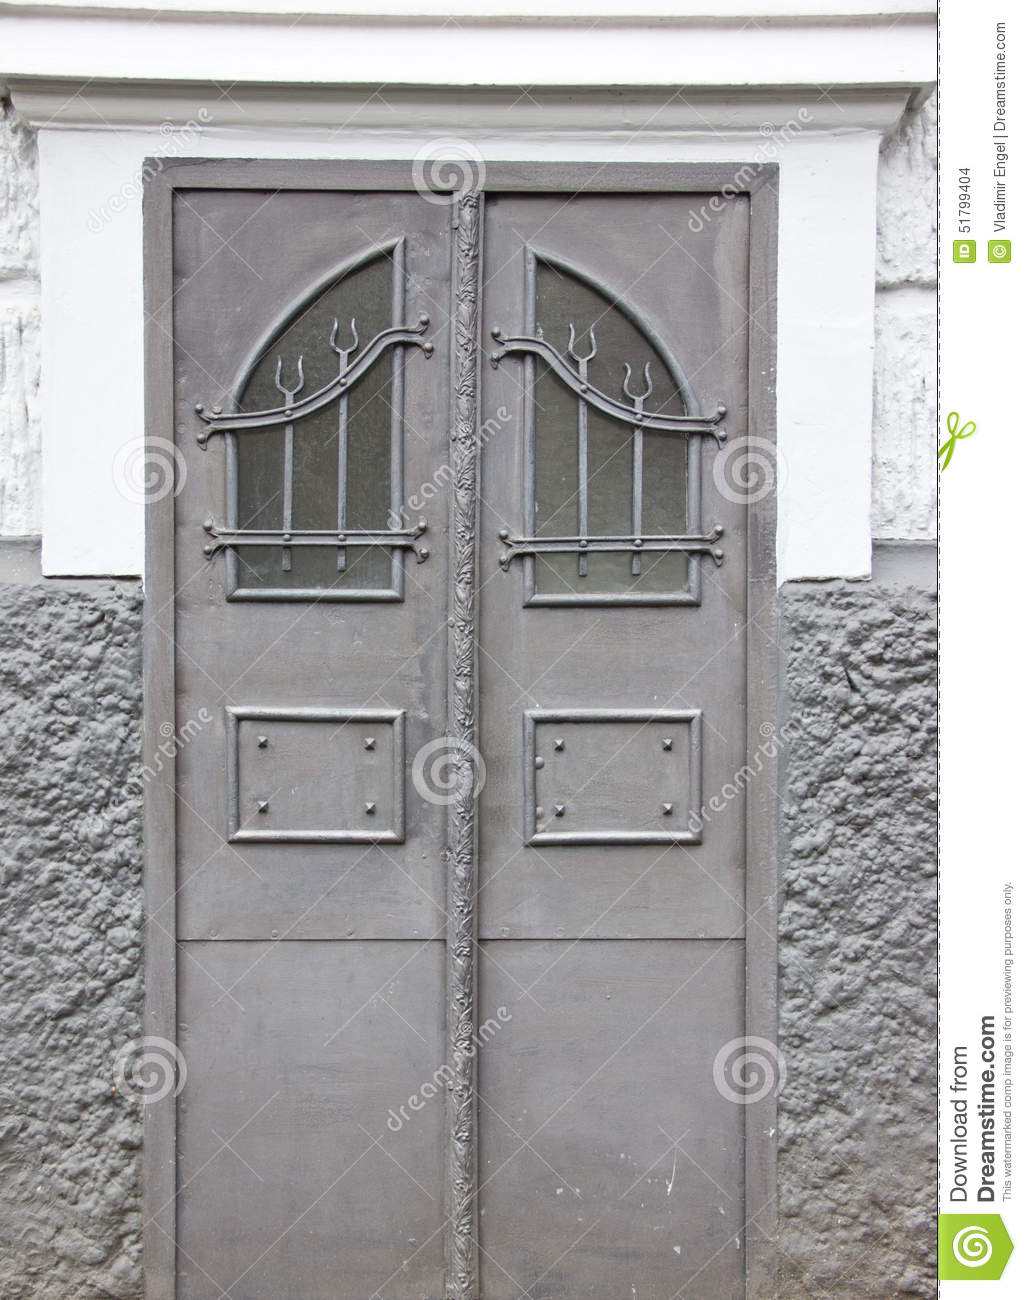 Door old architecture home design enter details